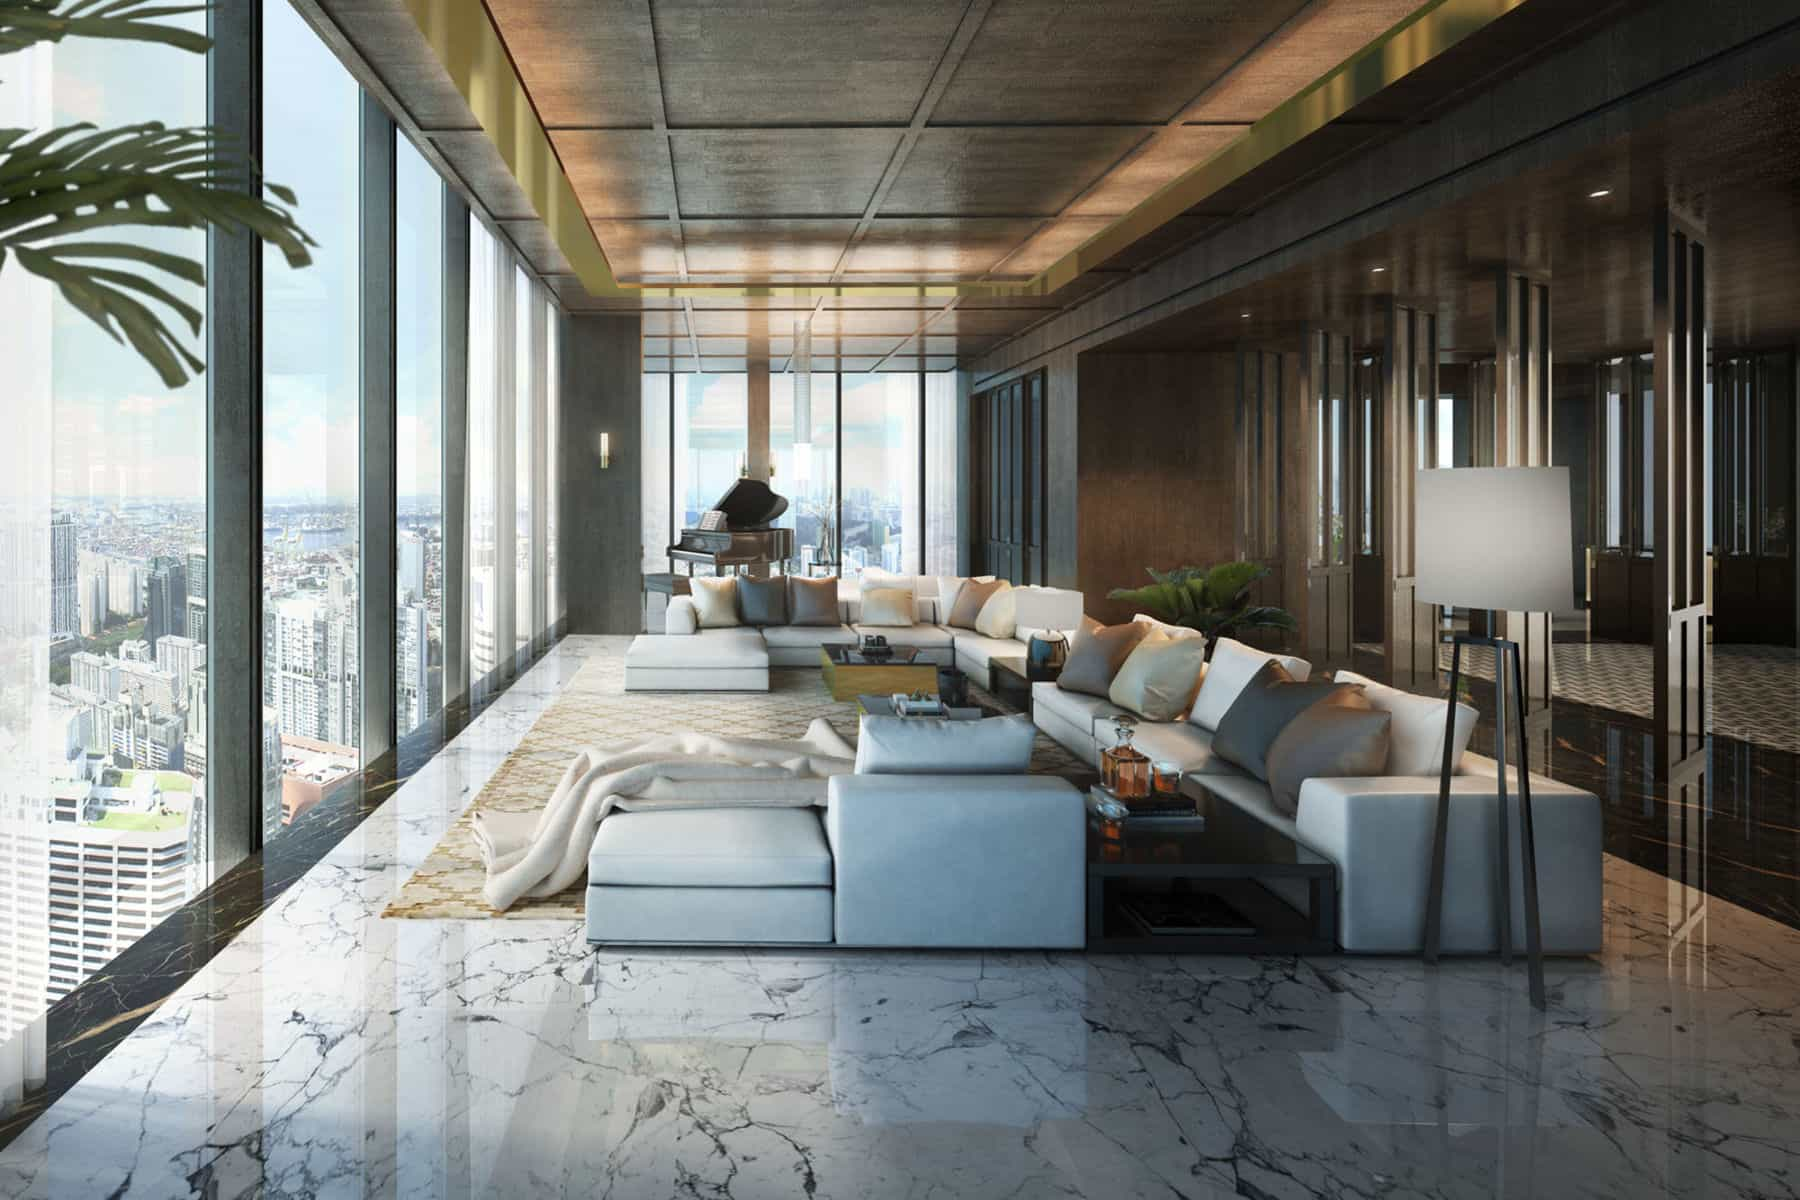 Singapore's Wallich Residence Super Penthouse Costs $784m